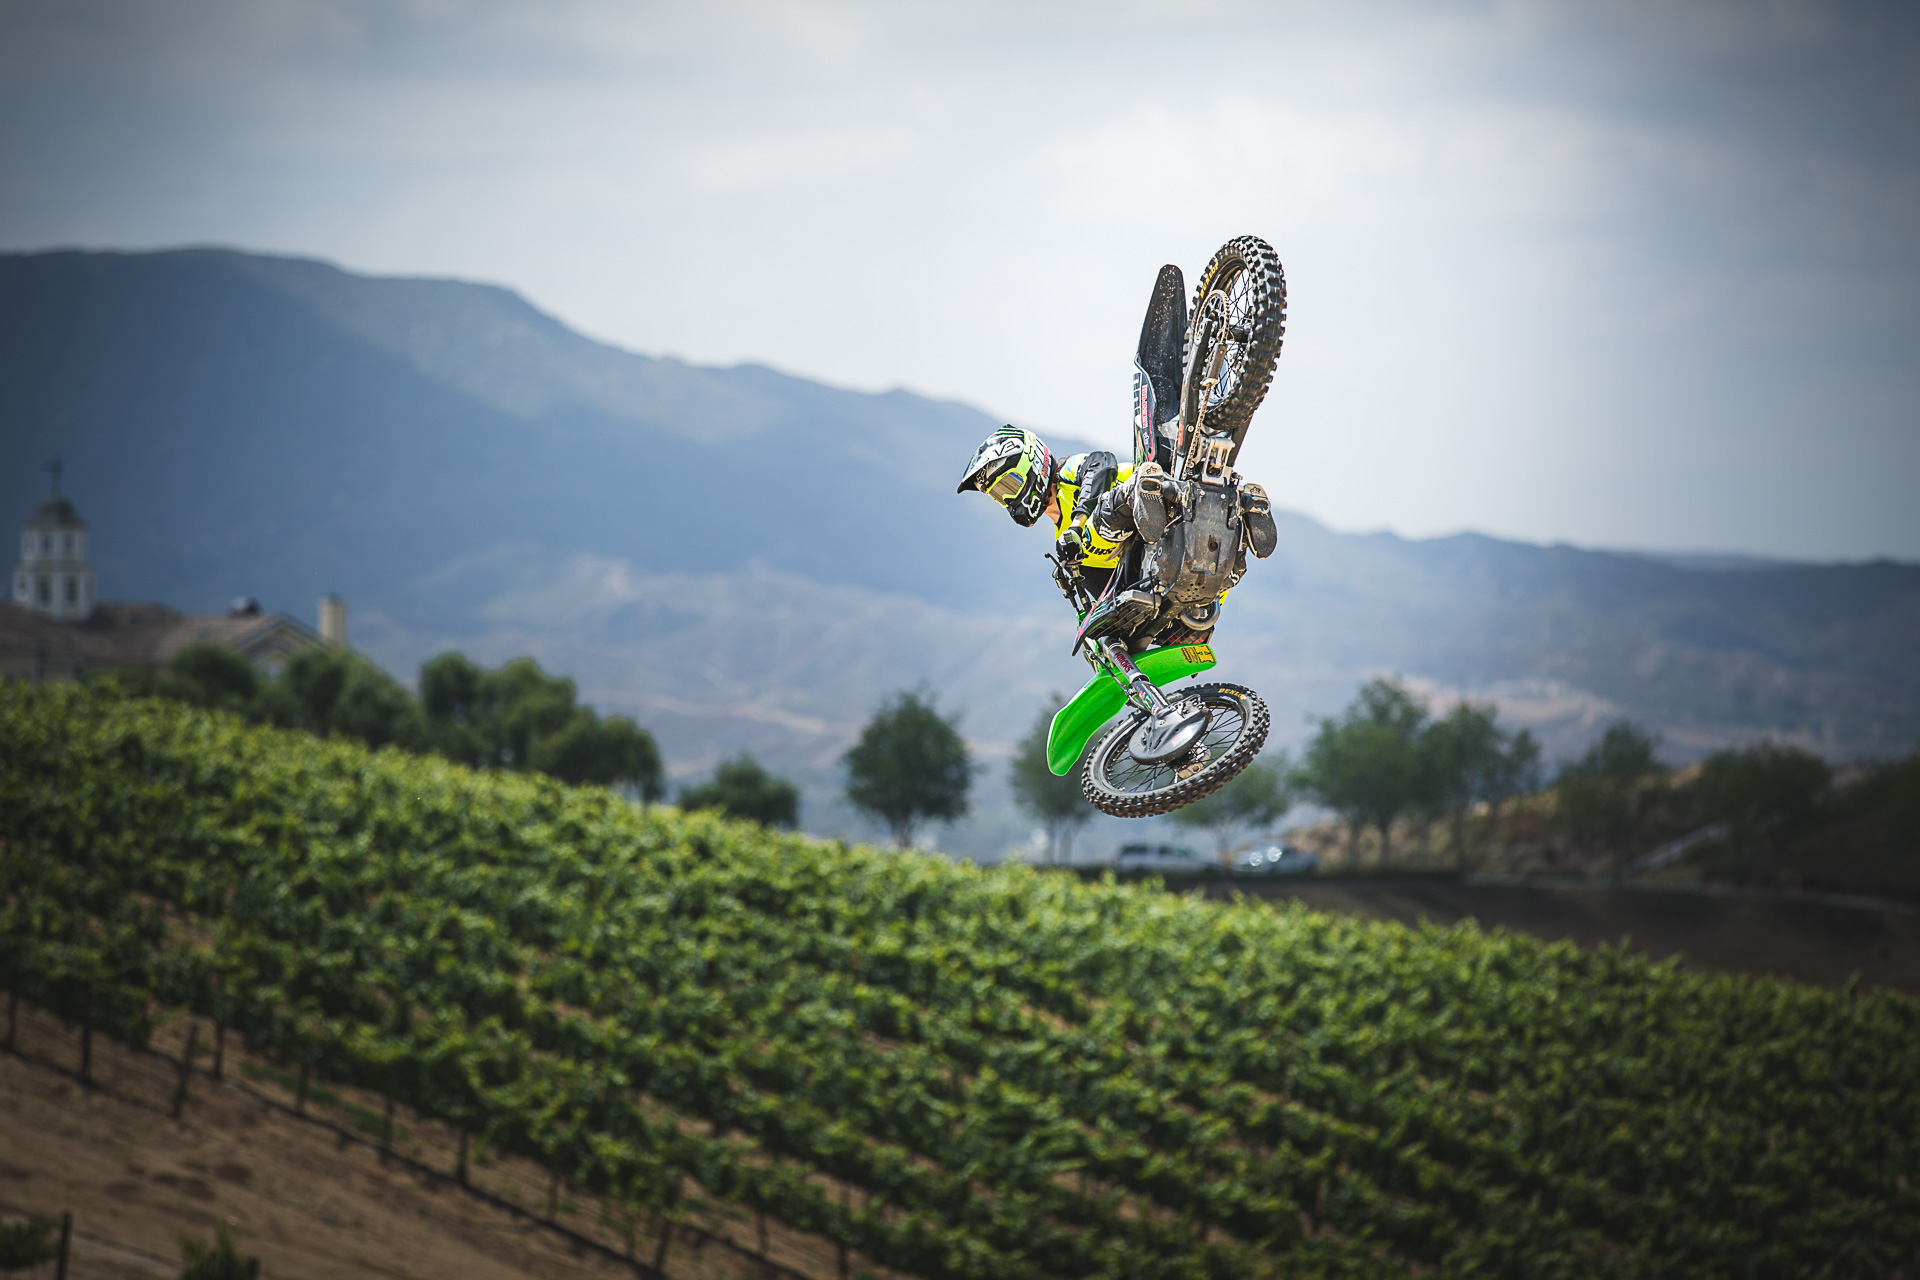 josh_hansen_photo_jimmy_Bowron_8399.jpg